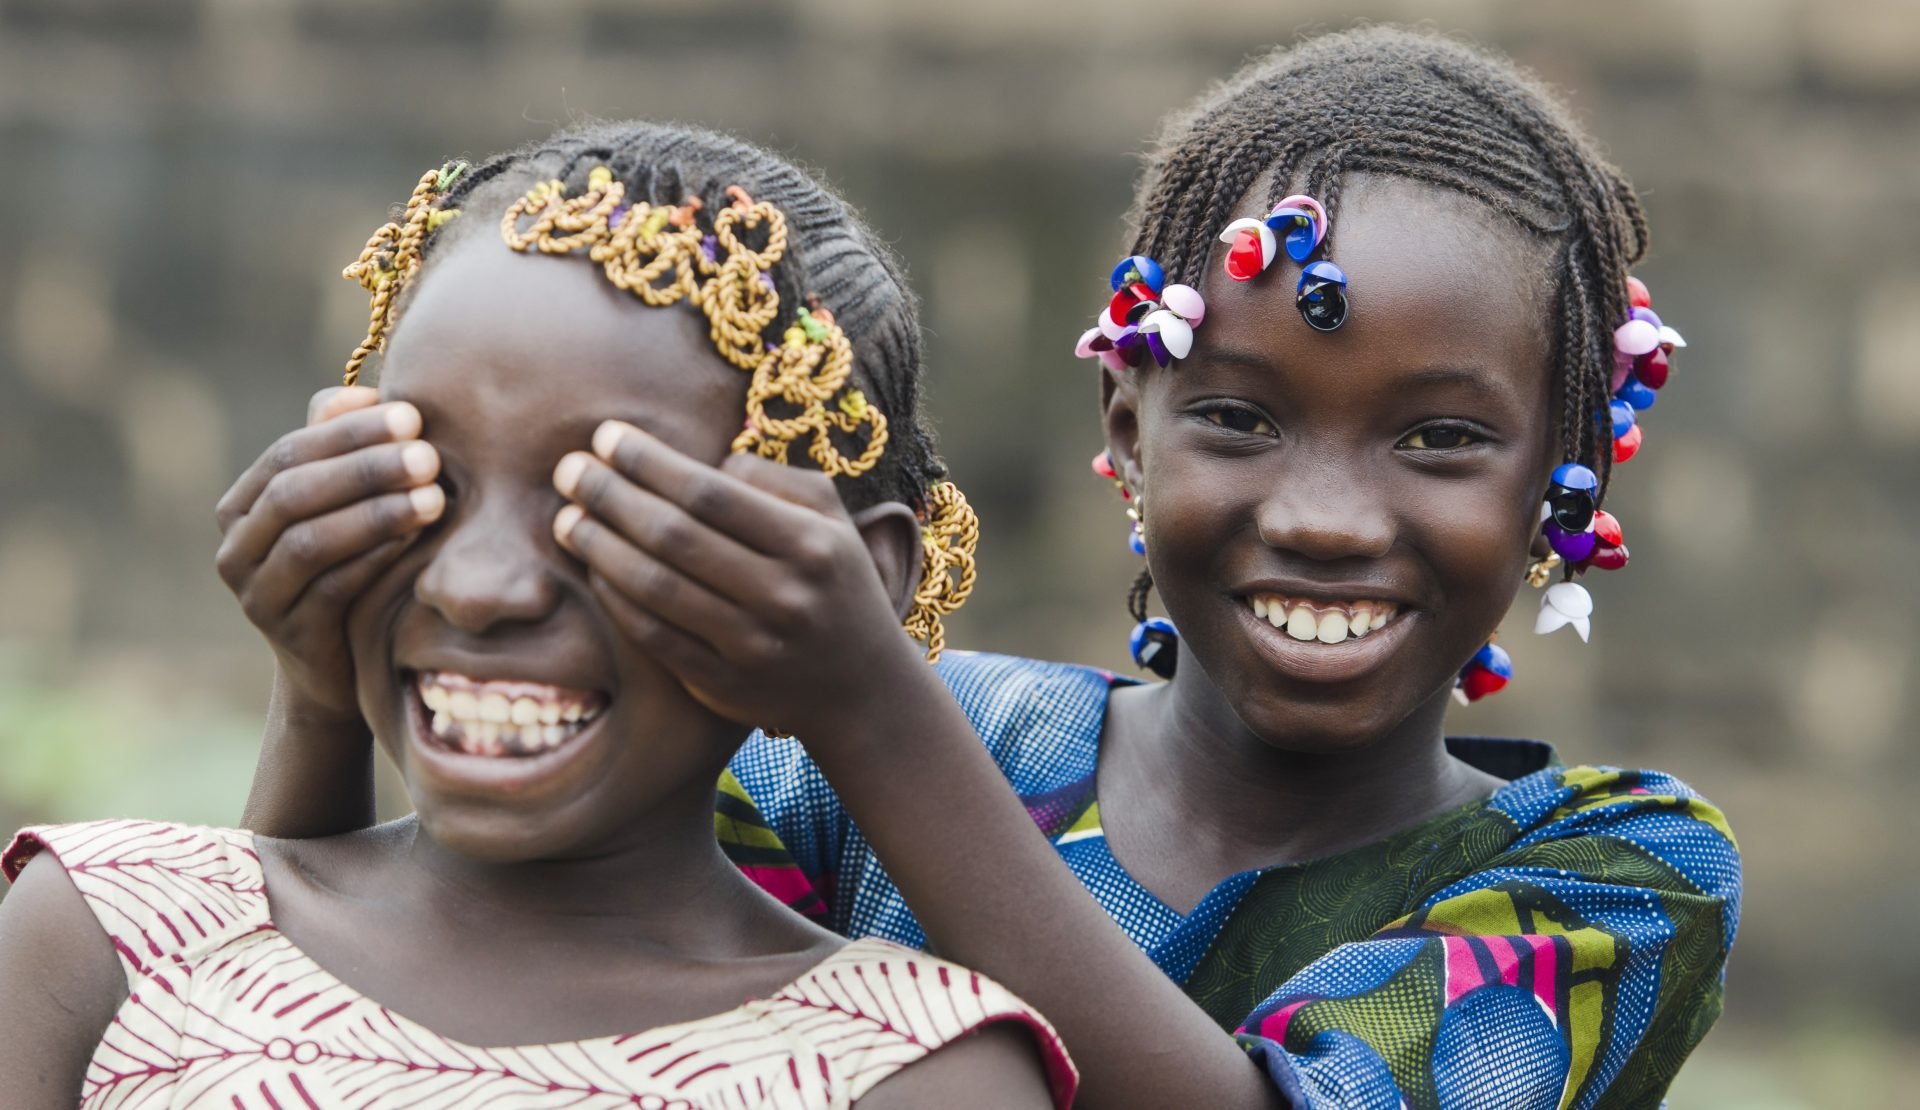 Two youg girls, probably in Africa.